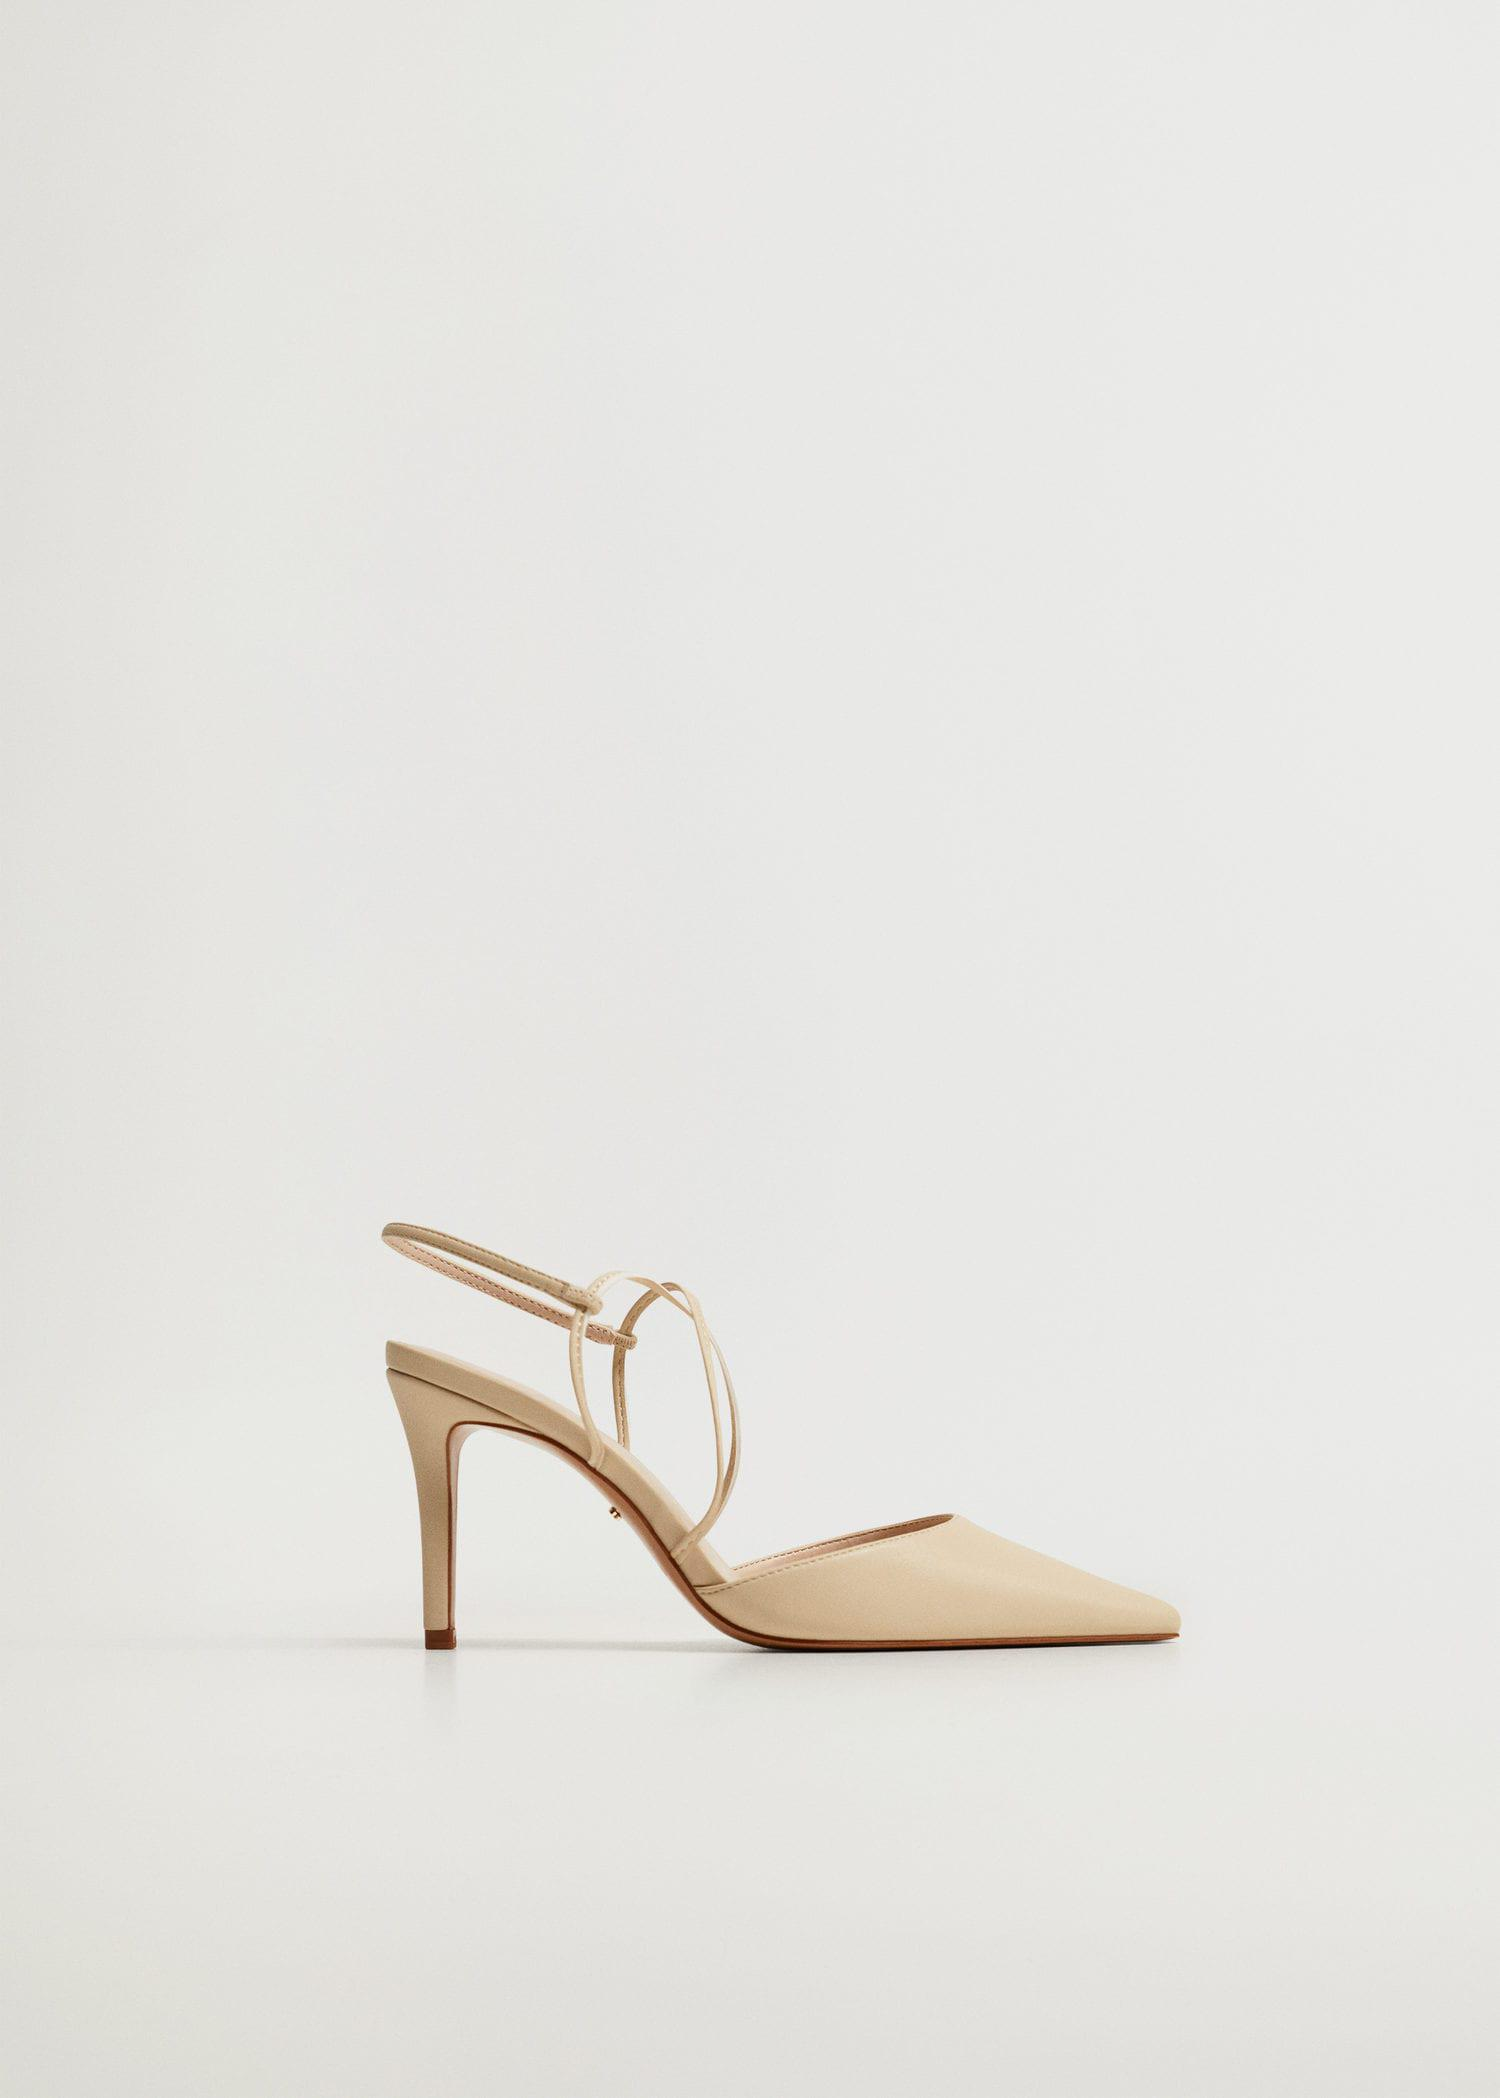 High-heeled shoes with straps